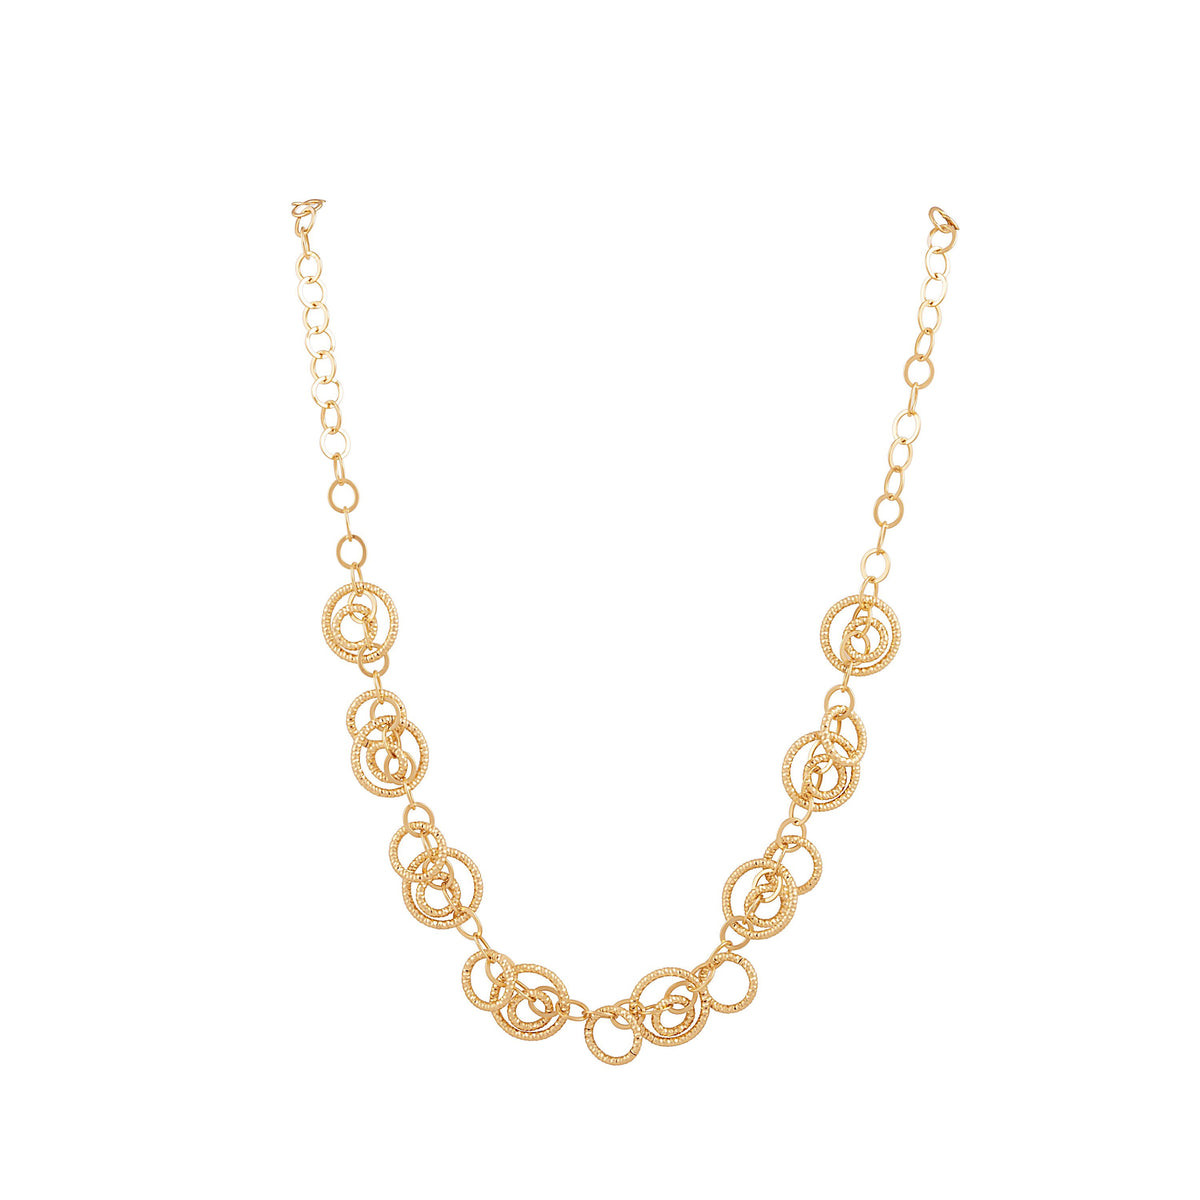 Idalia Jewelry The Circle Chain Link Necklace Gold